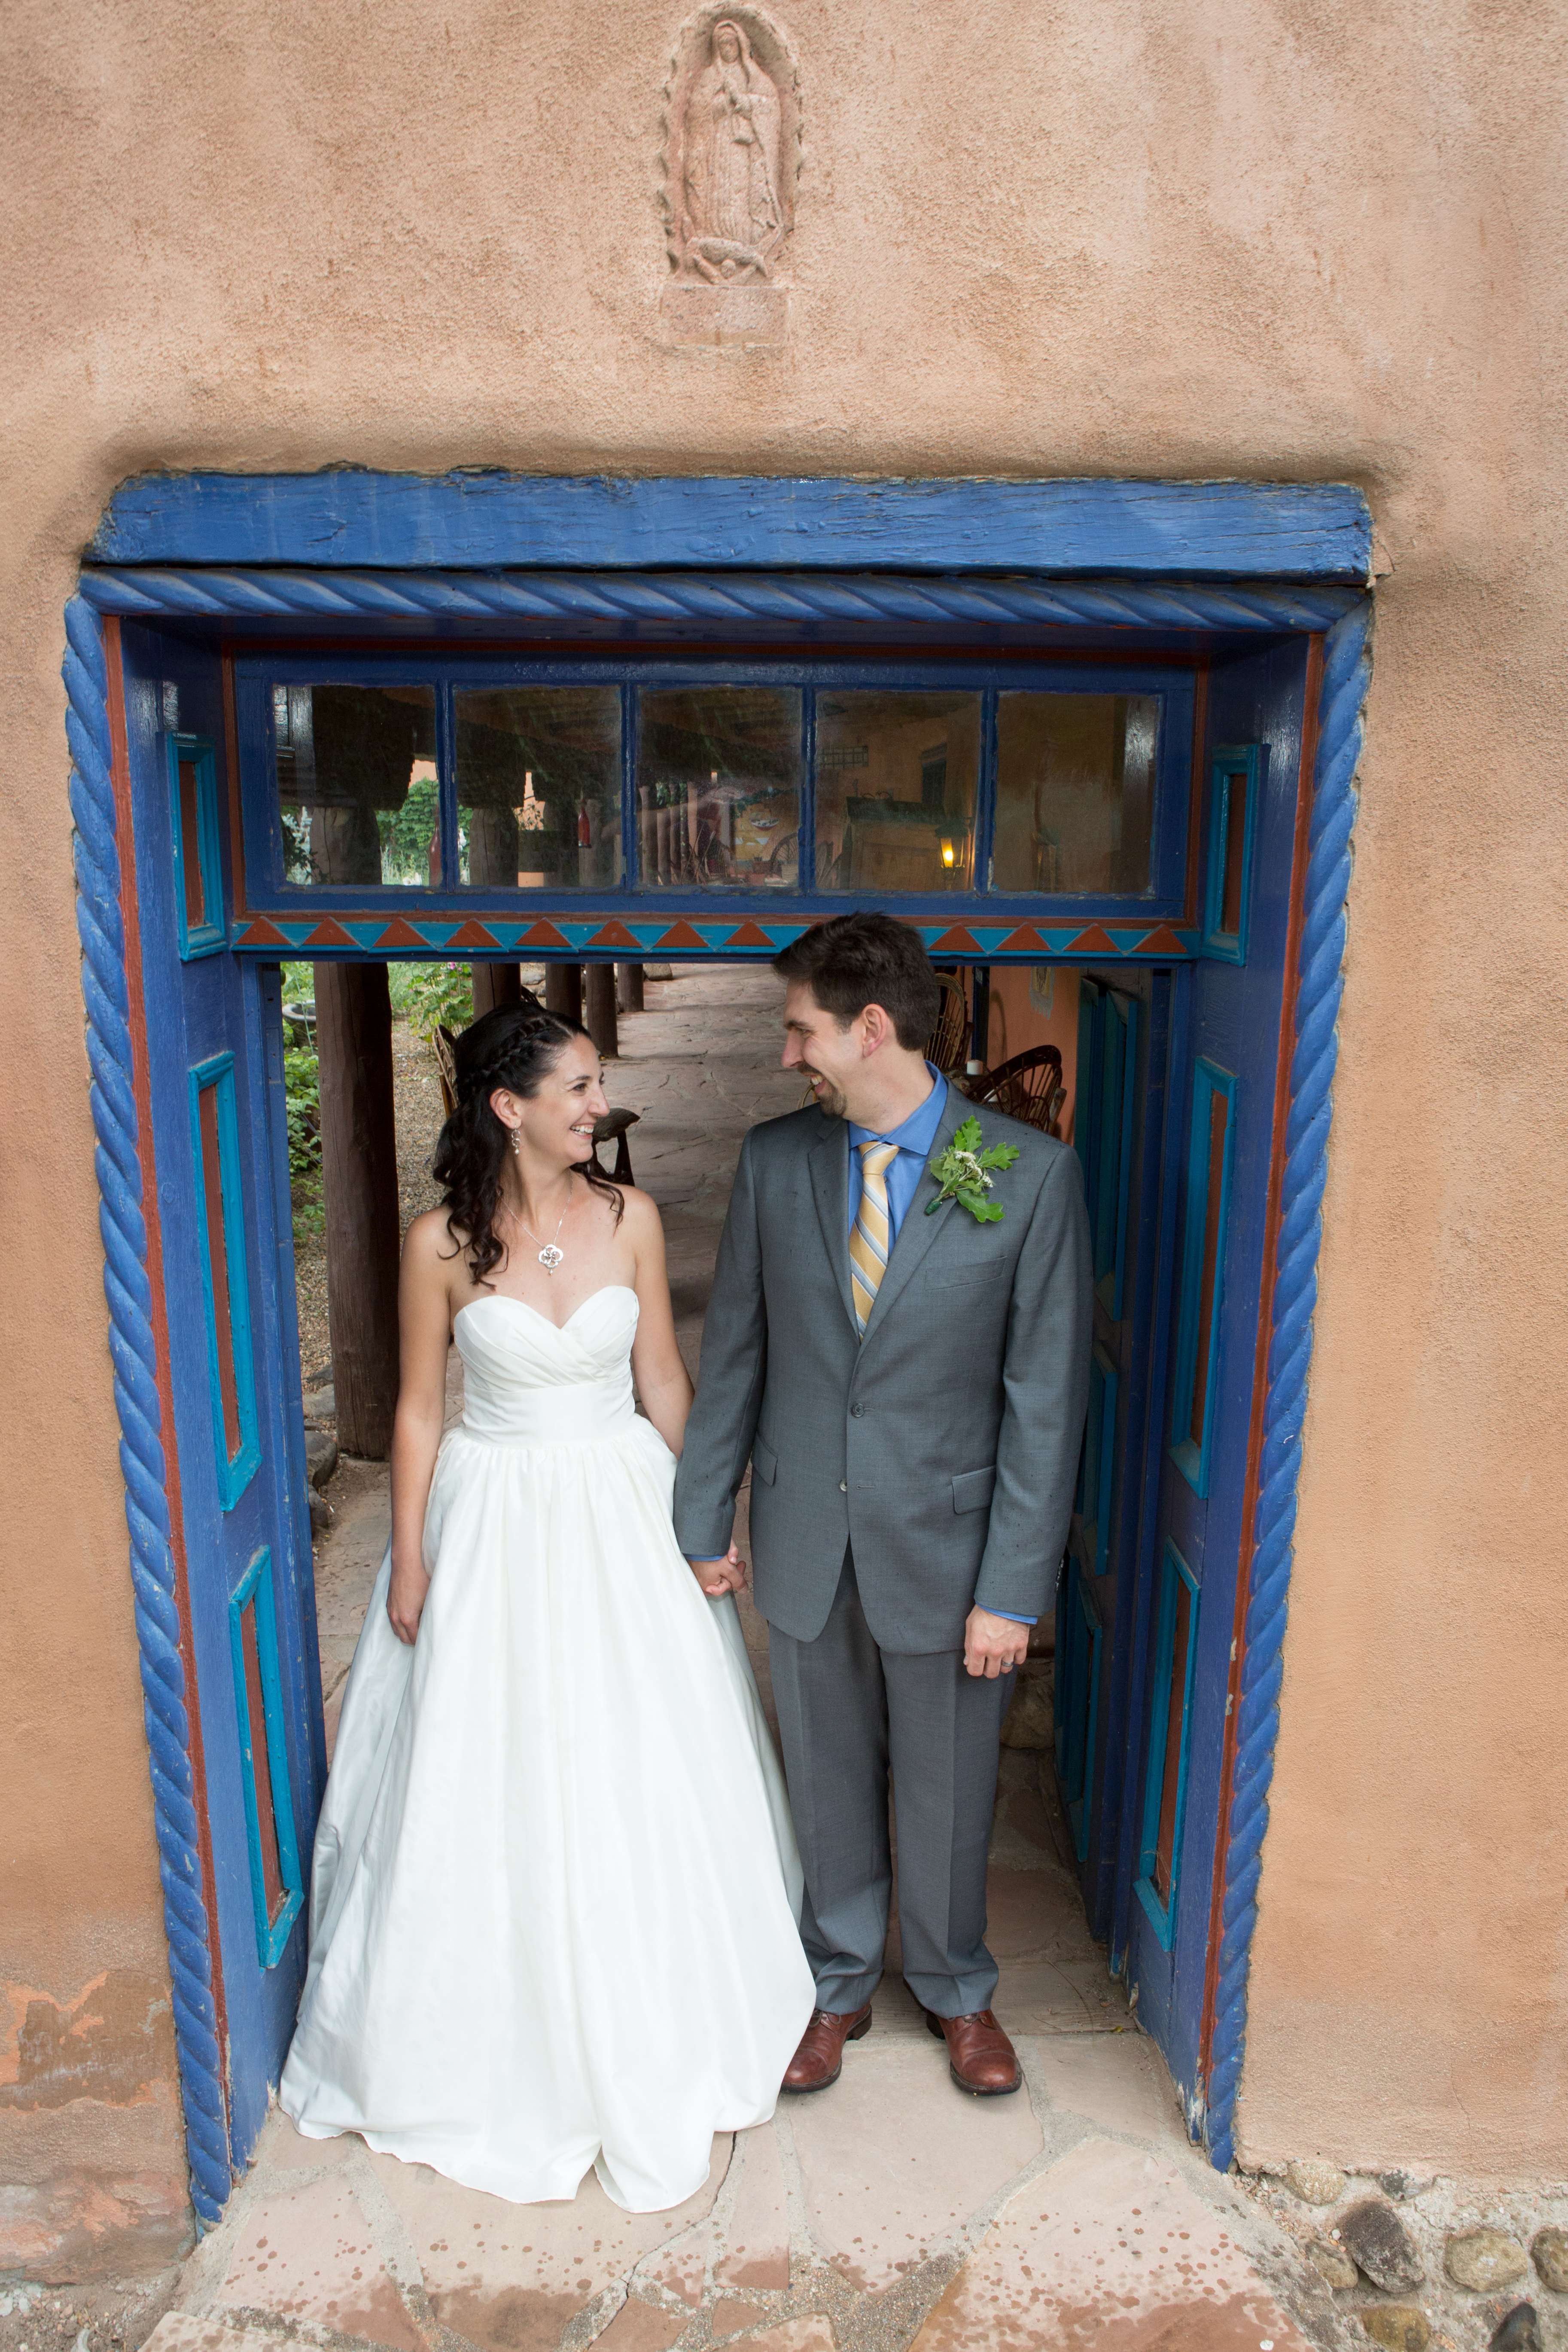 Outdoor July Wedding at Bed and Breakfast